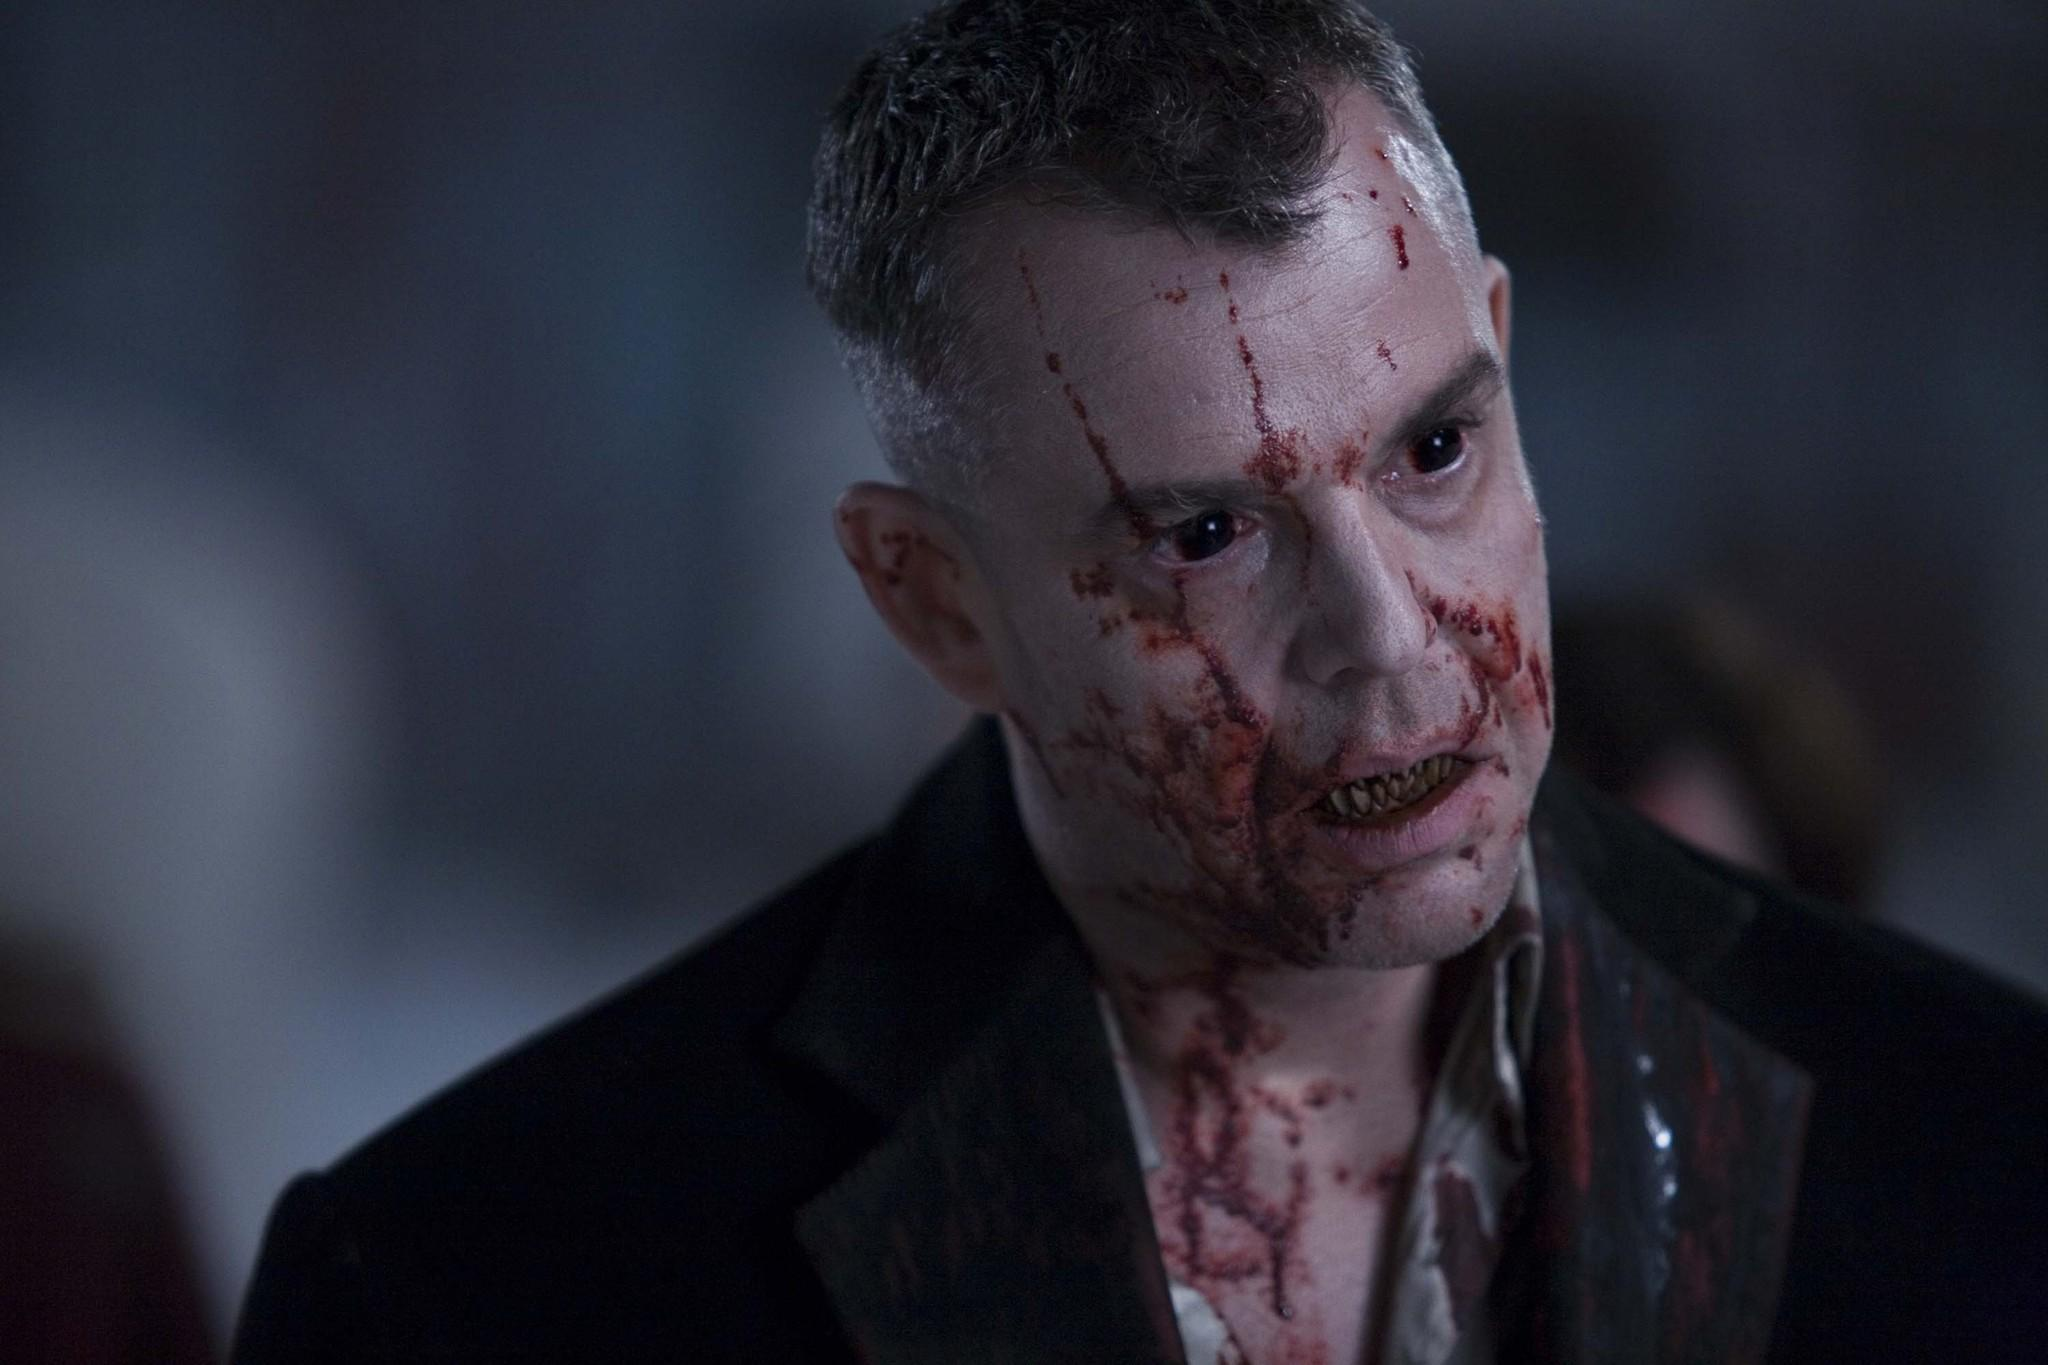 still-of-danny-huston-in-30-days-of-night-large-picture